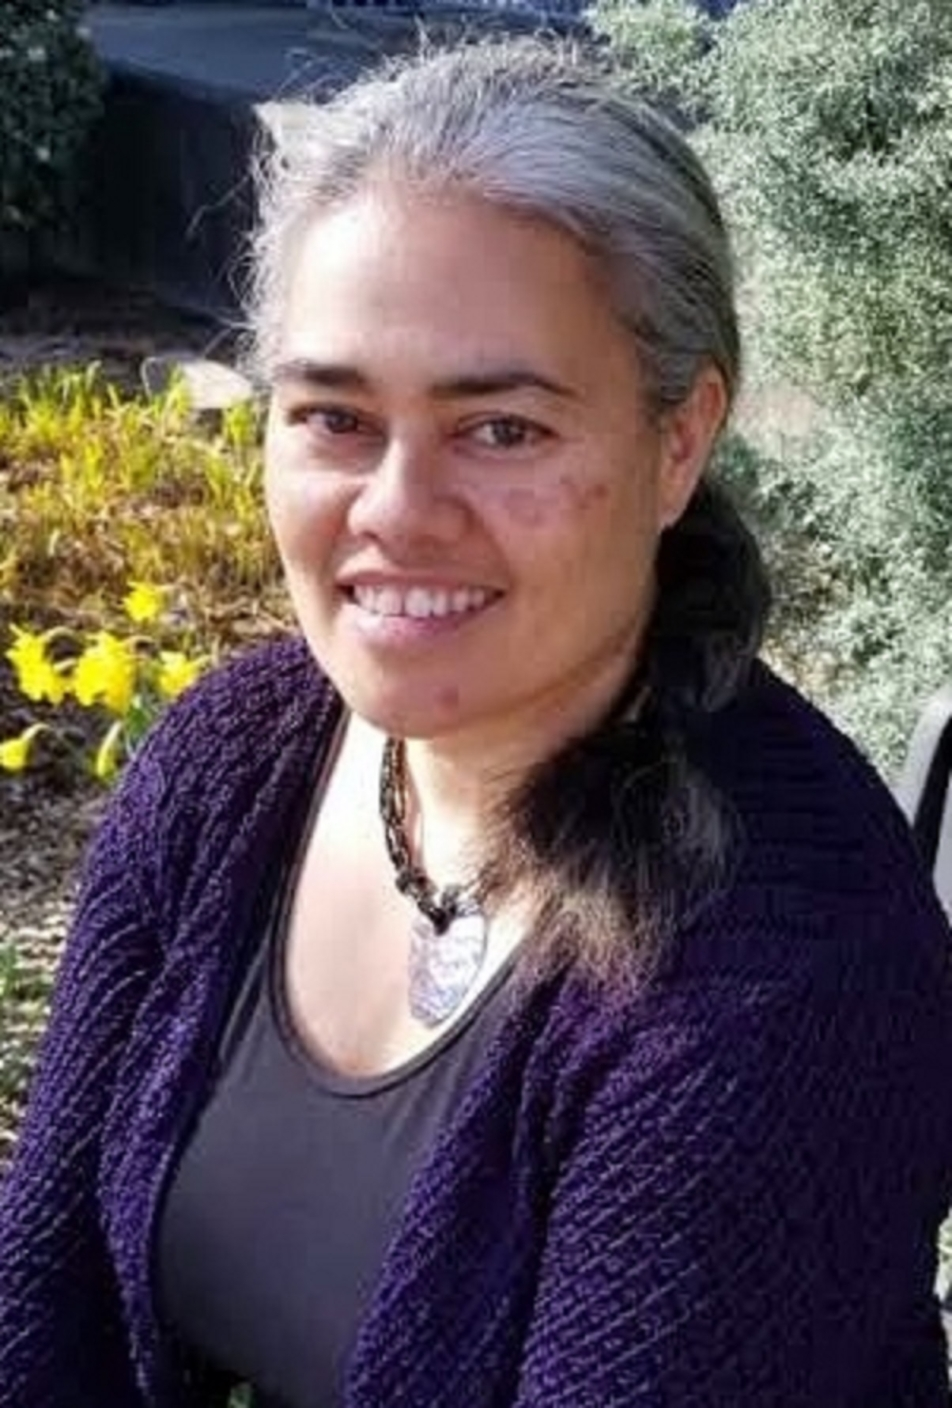 Smiling person with ponytail, wearing a necklace and purple sweater over grey shirt